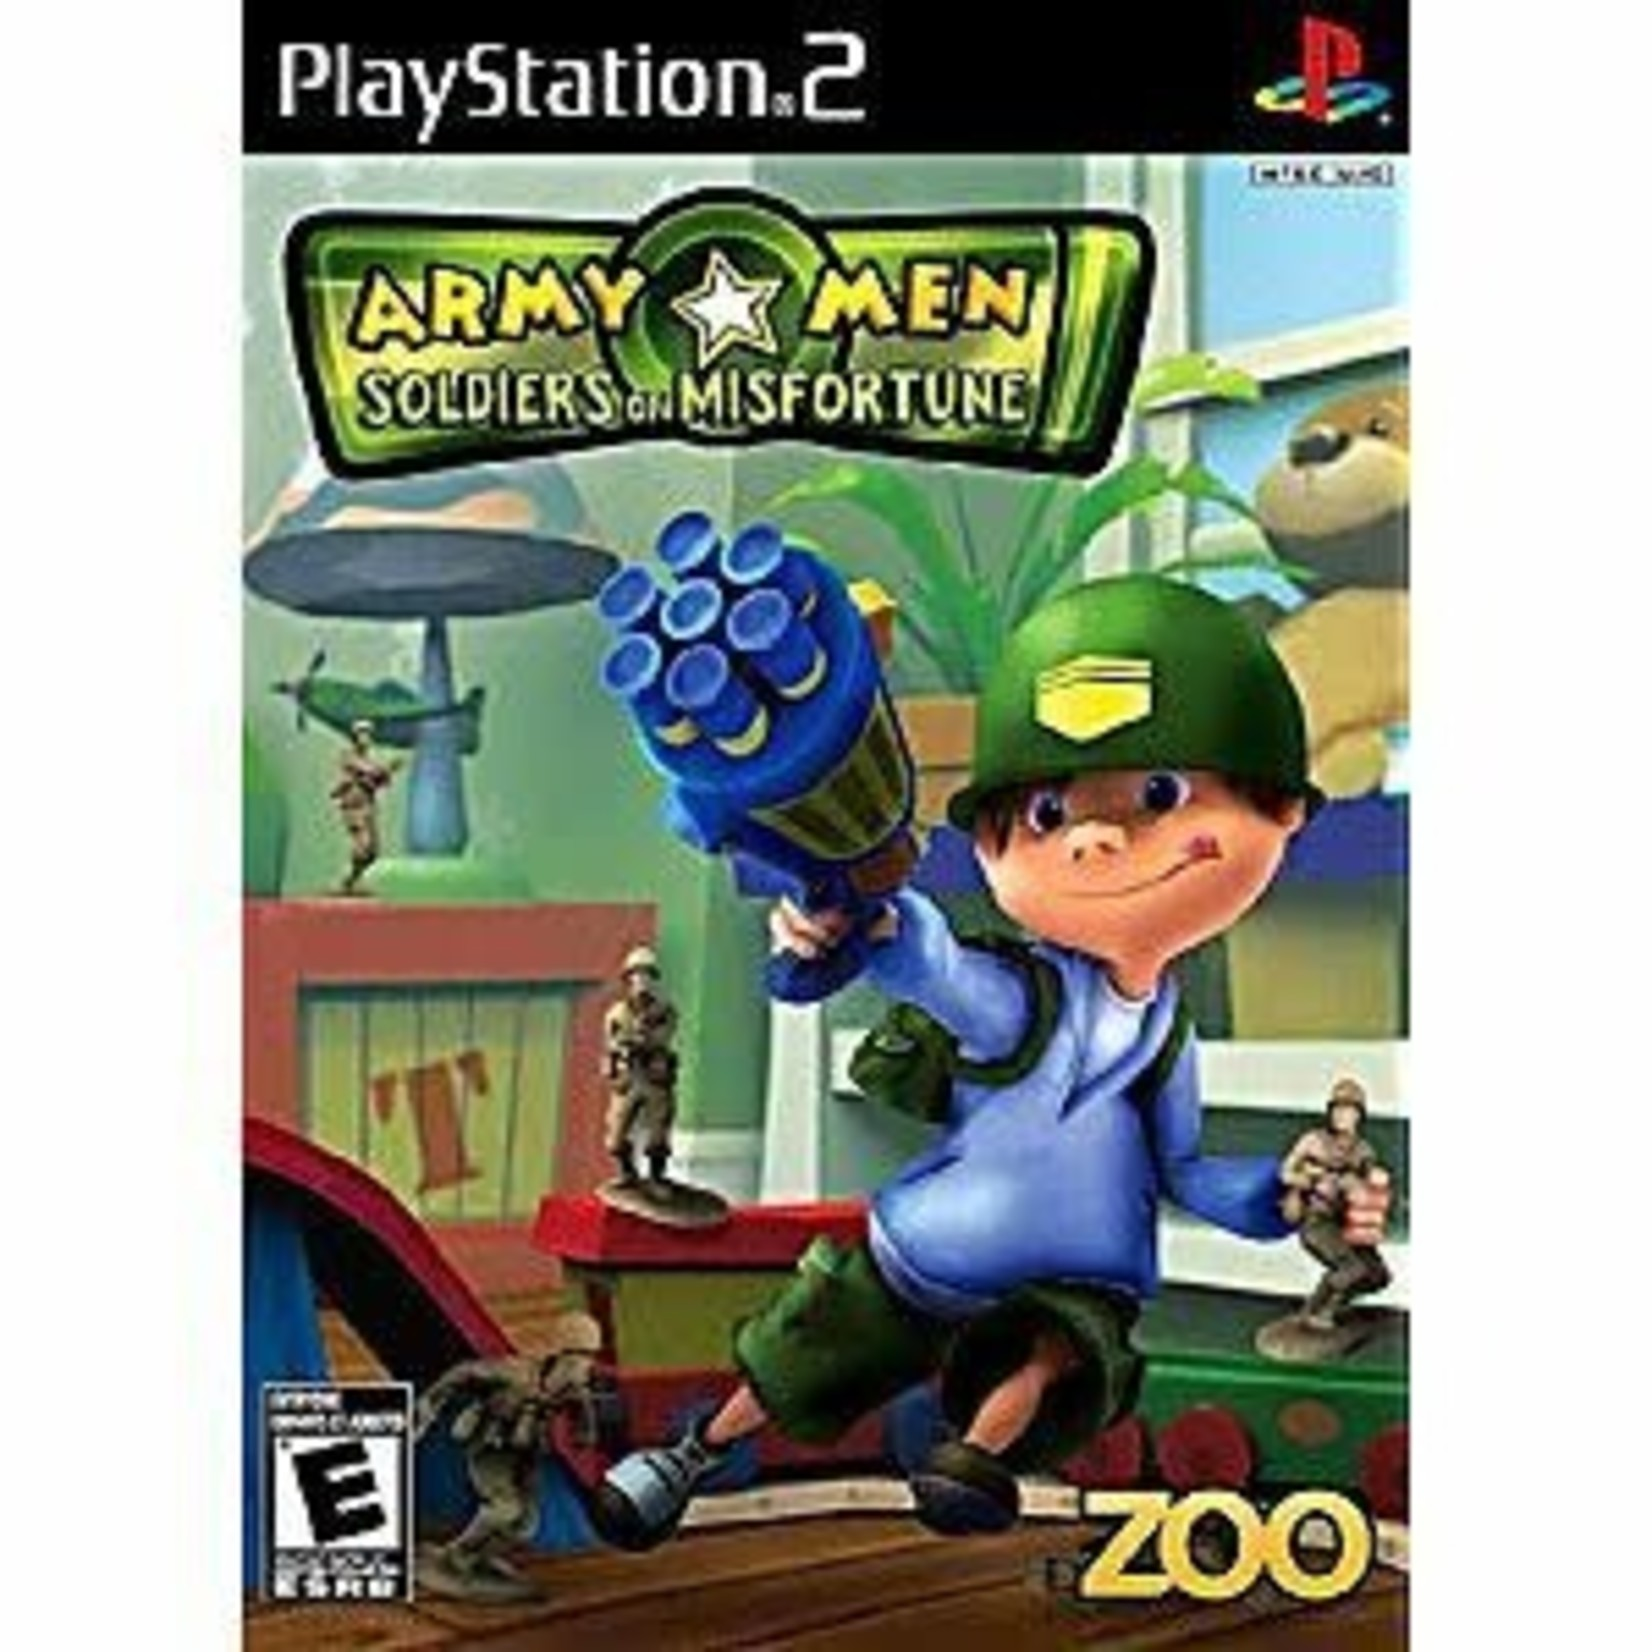 PS2U-ARMY MEN SOLDIERS OF MISFORTUNE